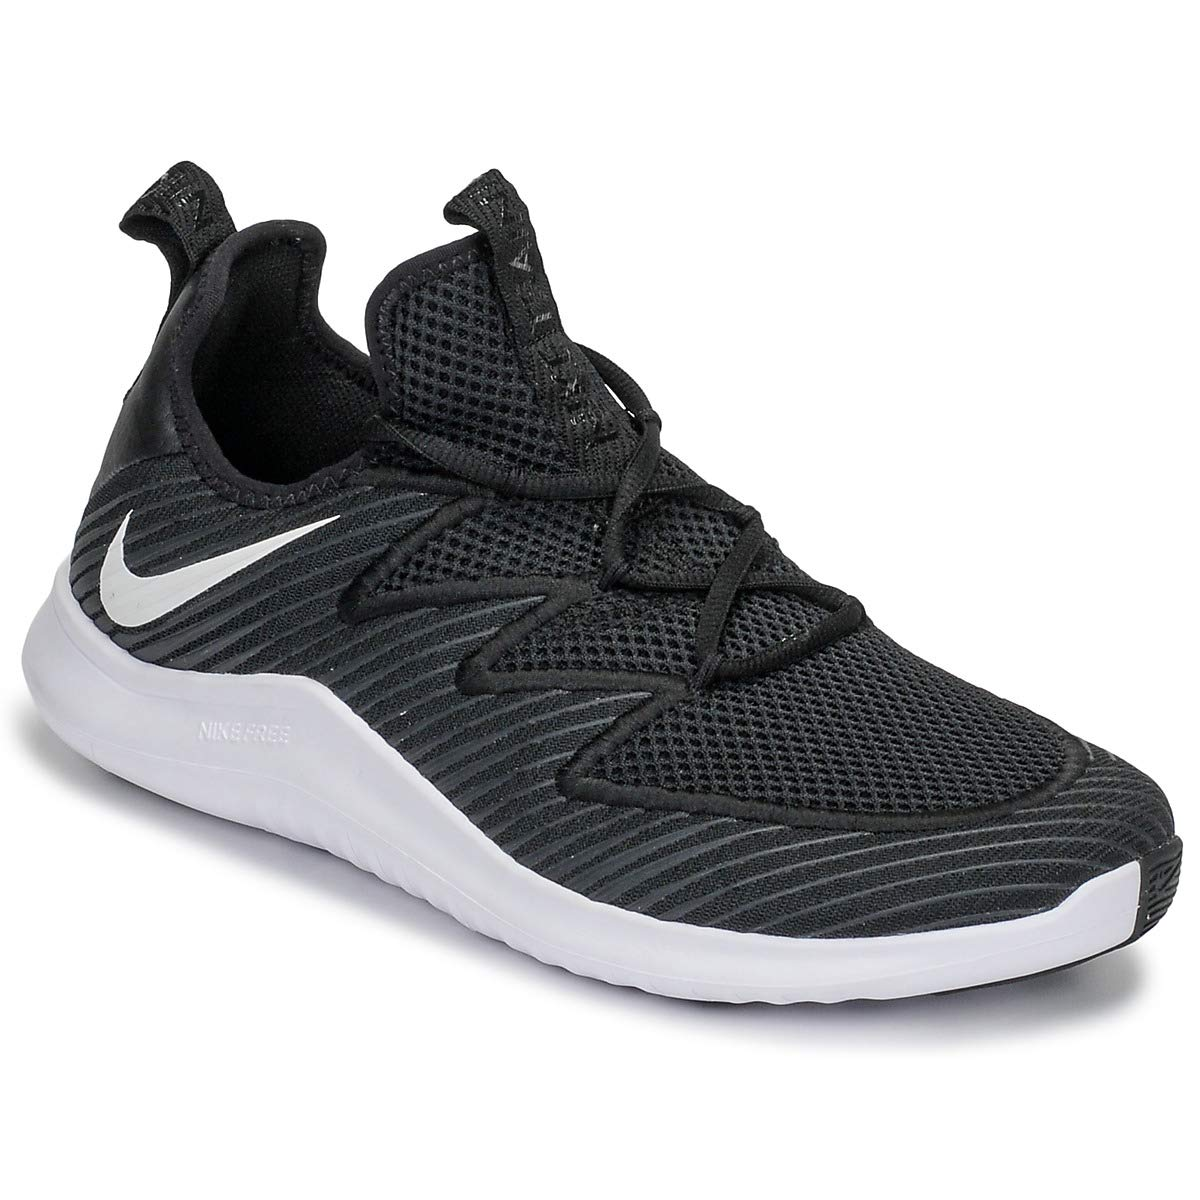 953a7c2234f2 Nike Men s Free Tr Ultra Fitness Shoes  Amazon.co.uk  Shoes   Bags